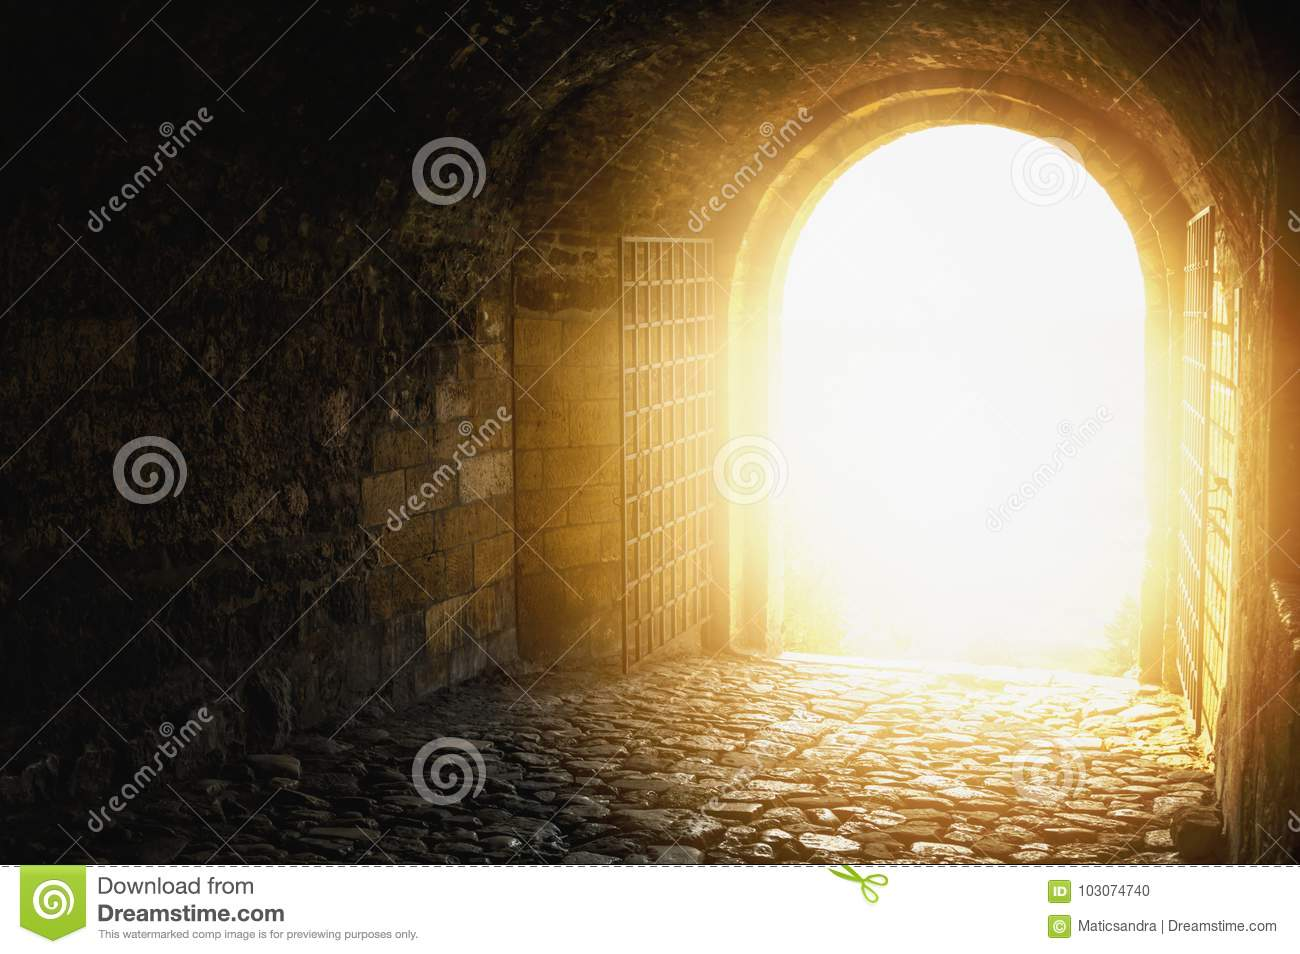 Door to Heaven. Arched passage open to heaven`s sky.Light at end of the tunnel. Light at end of the tunnel.